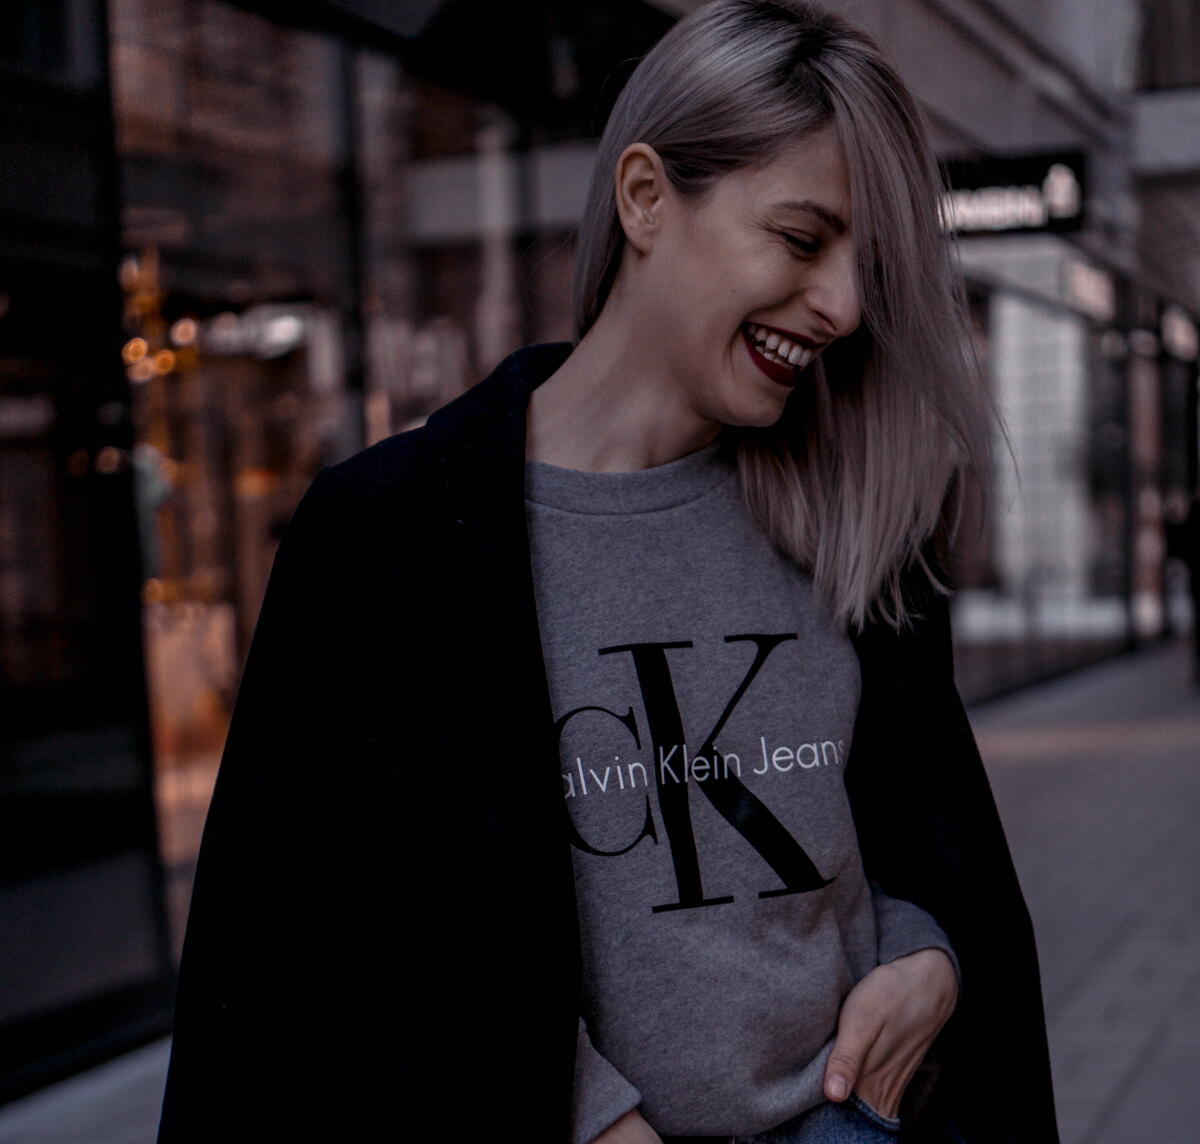 Calvin Klein Logo Sweater by The Cosmopolitas